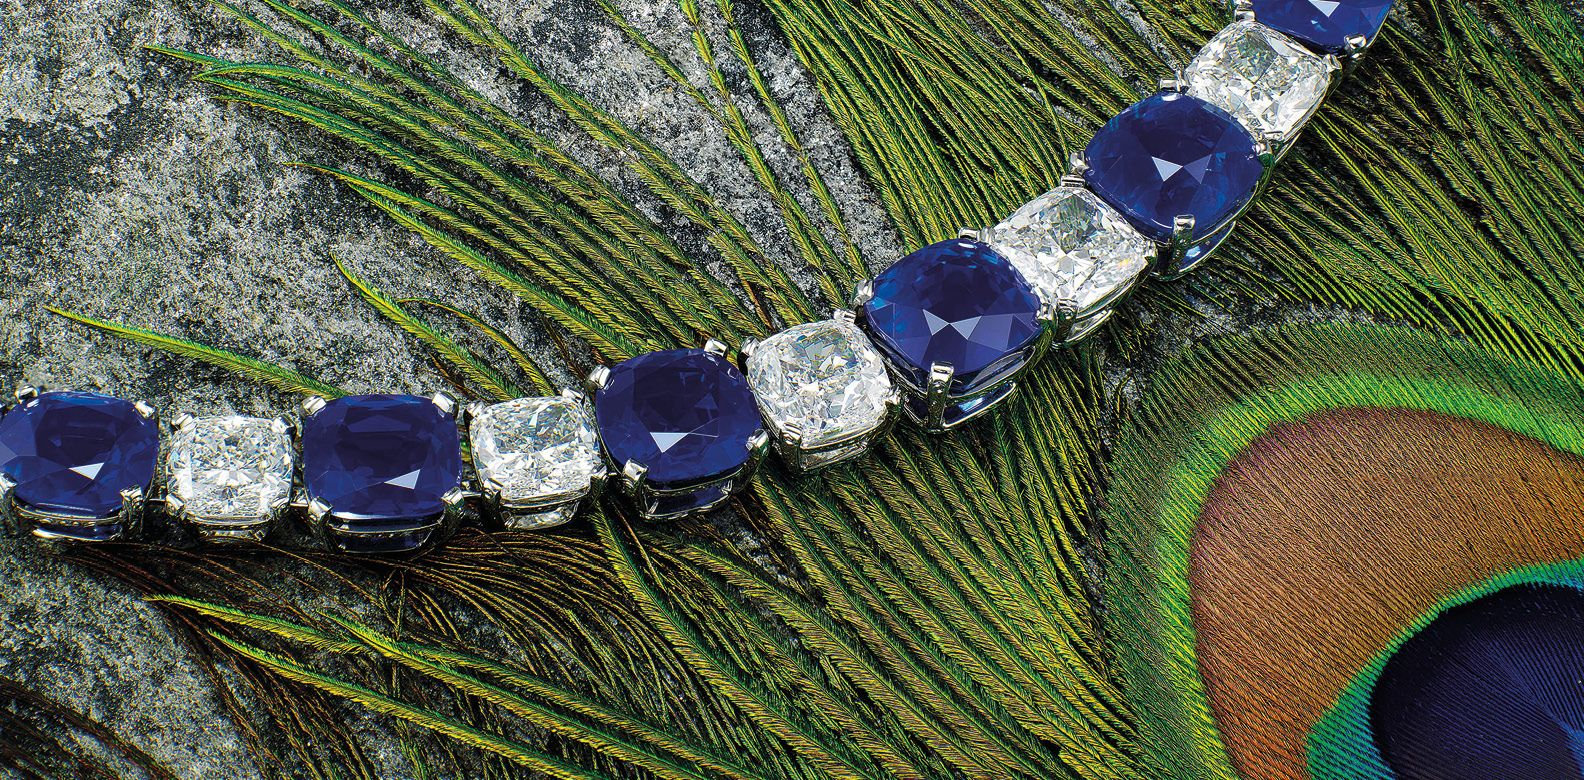 The Kashmir Sapphire Peacock Necklace Leads Christie's Auction